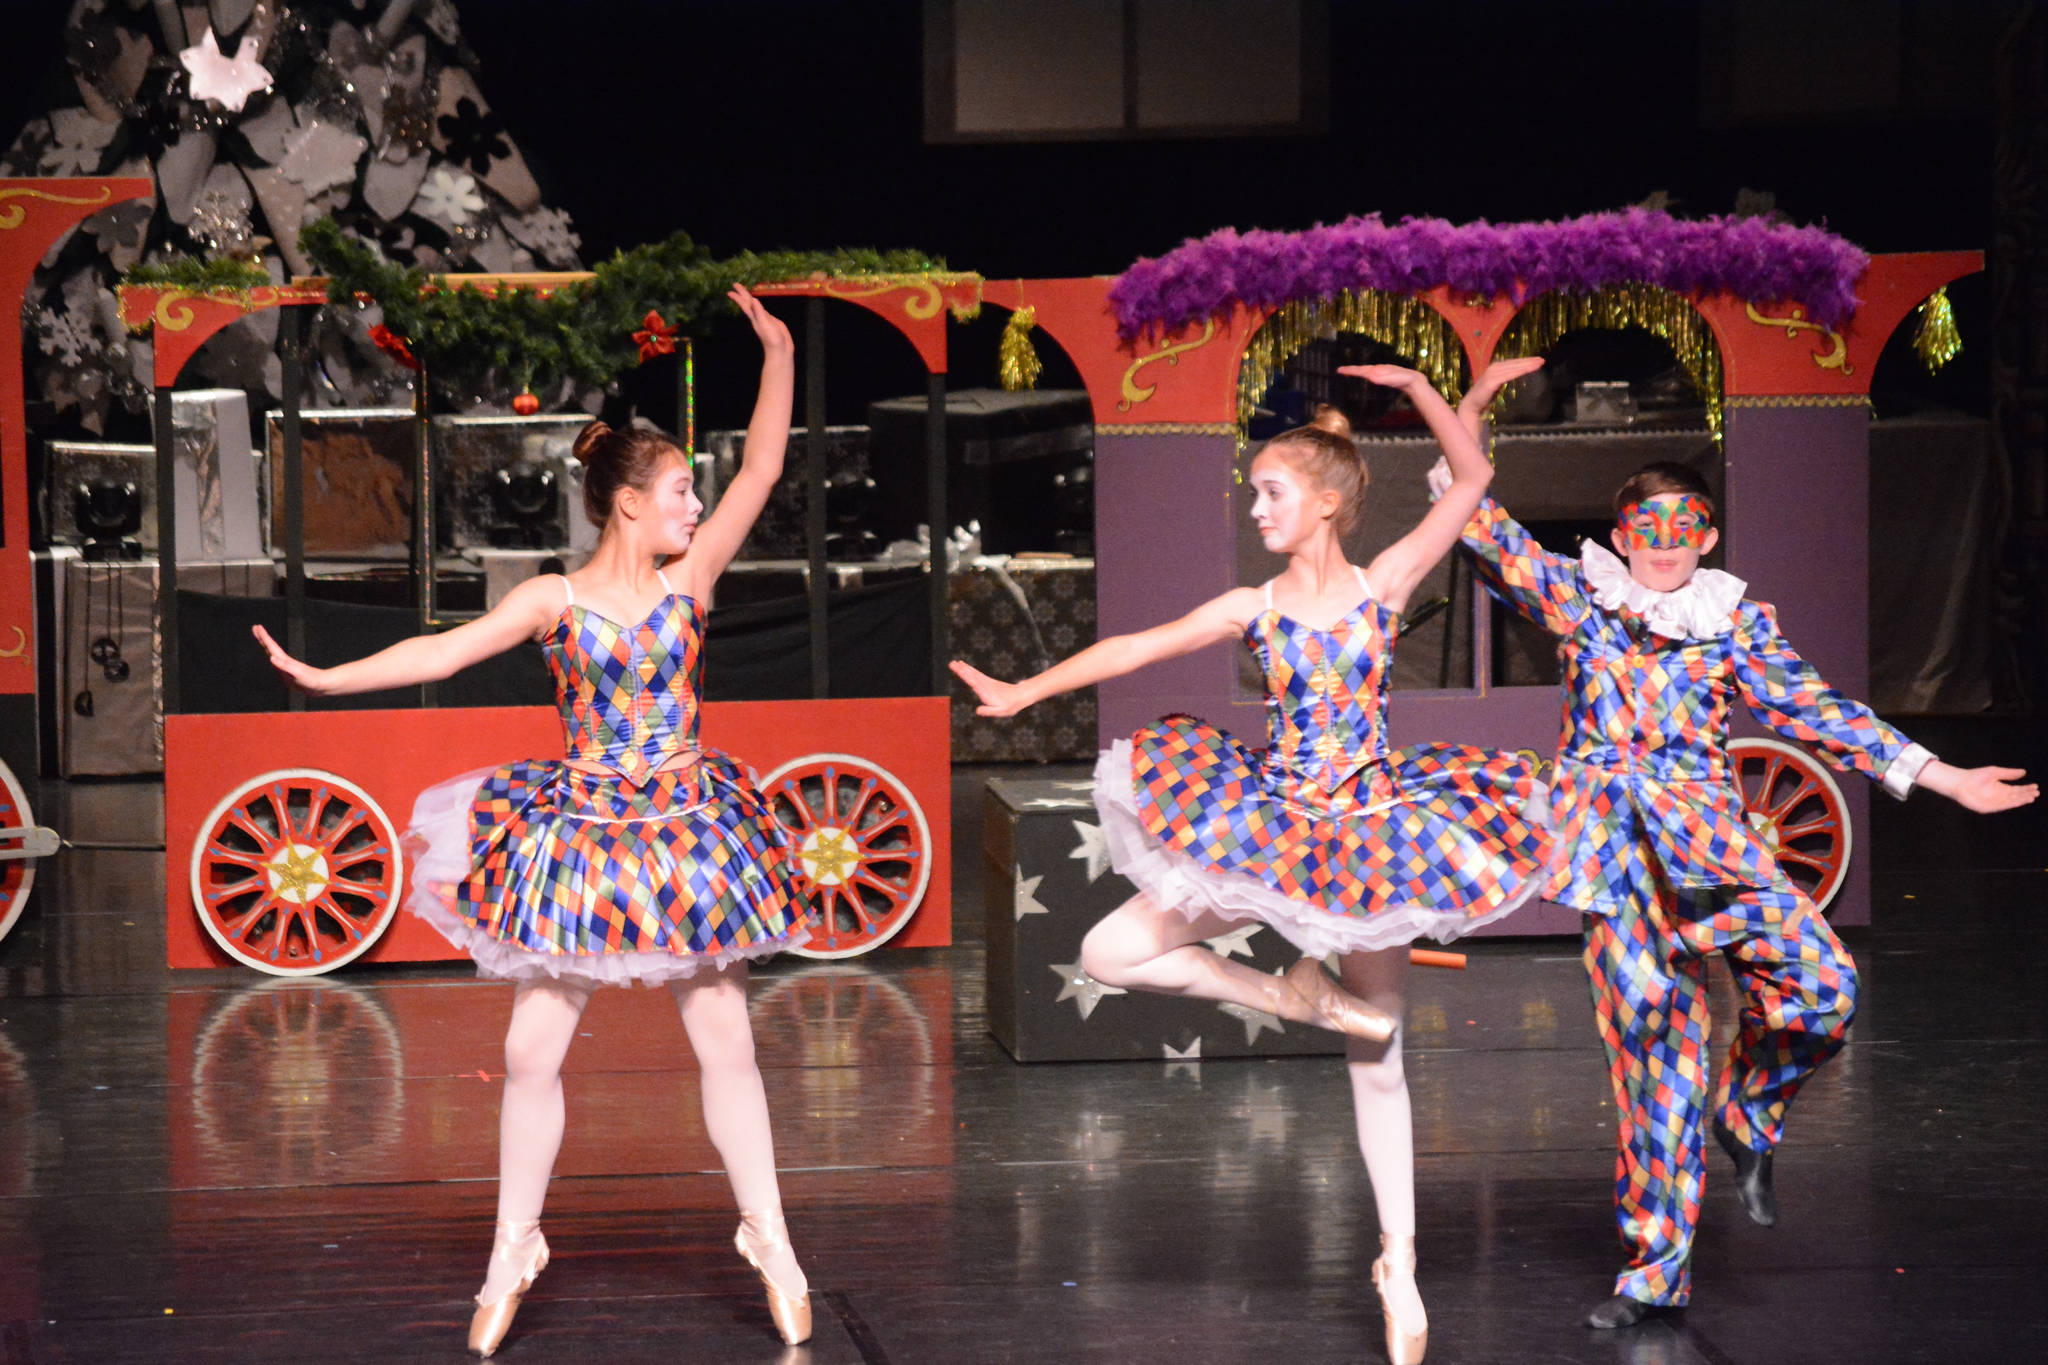 Serena Funkhauser, Ava Halstead and Lance Seneff as the harlequin toys rhearse a scene at the Mariner Theatre Friday, Nov. 24, 2017 in Homer, Alaska for the Nutcracker Ballet. (Photo by Michael Armstrong, Homer News)